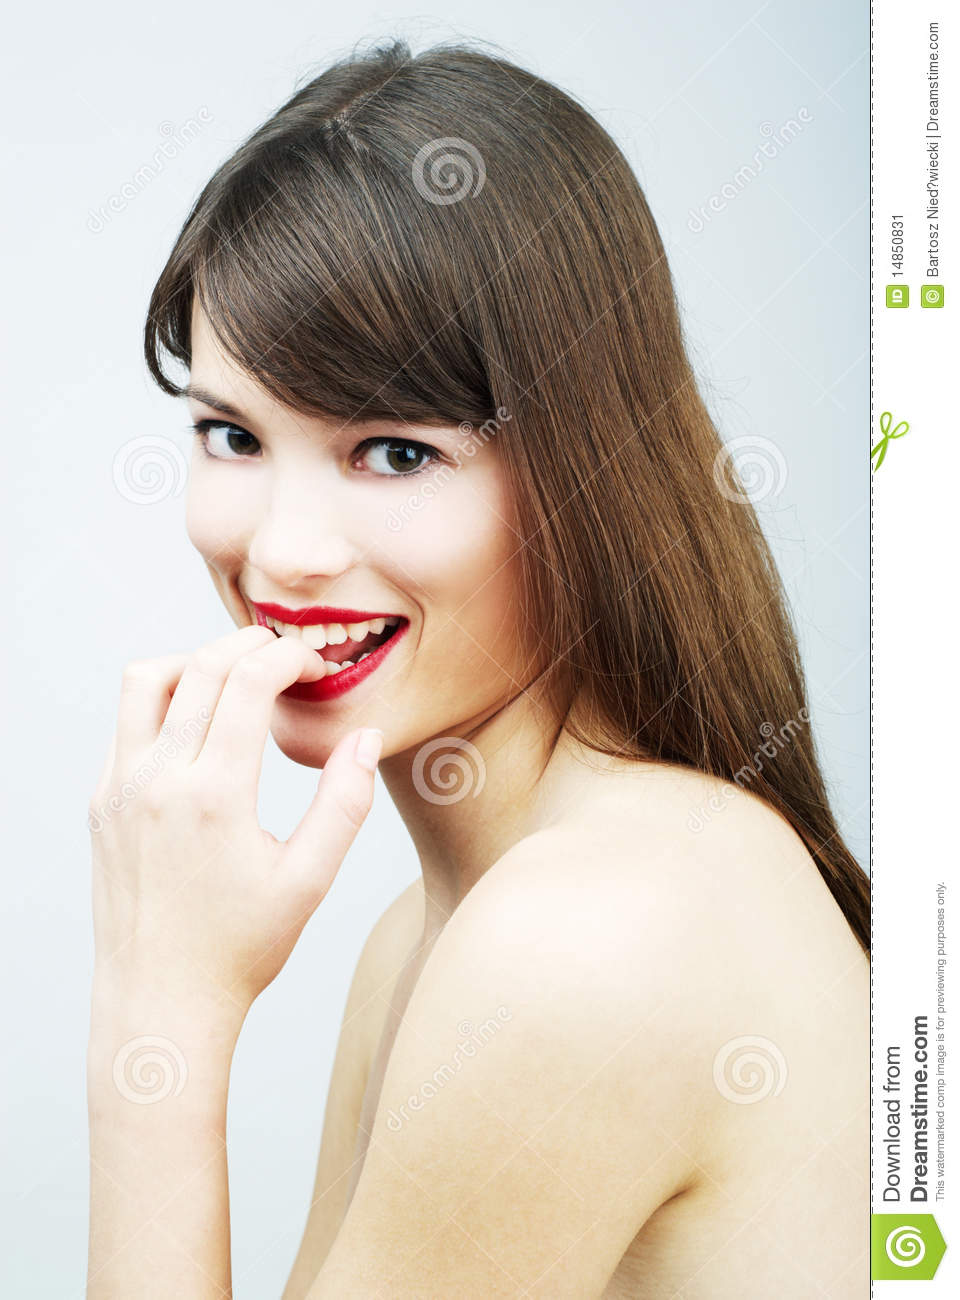 Portrait of a woman biting her finger